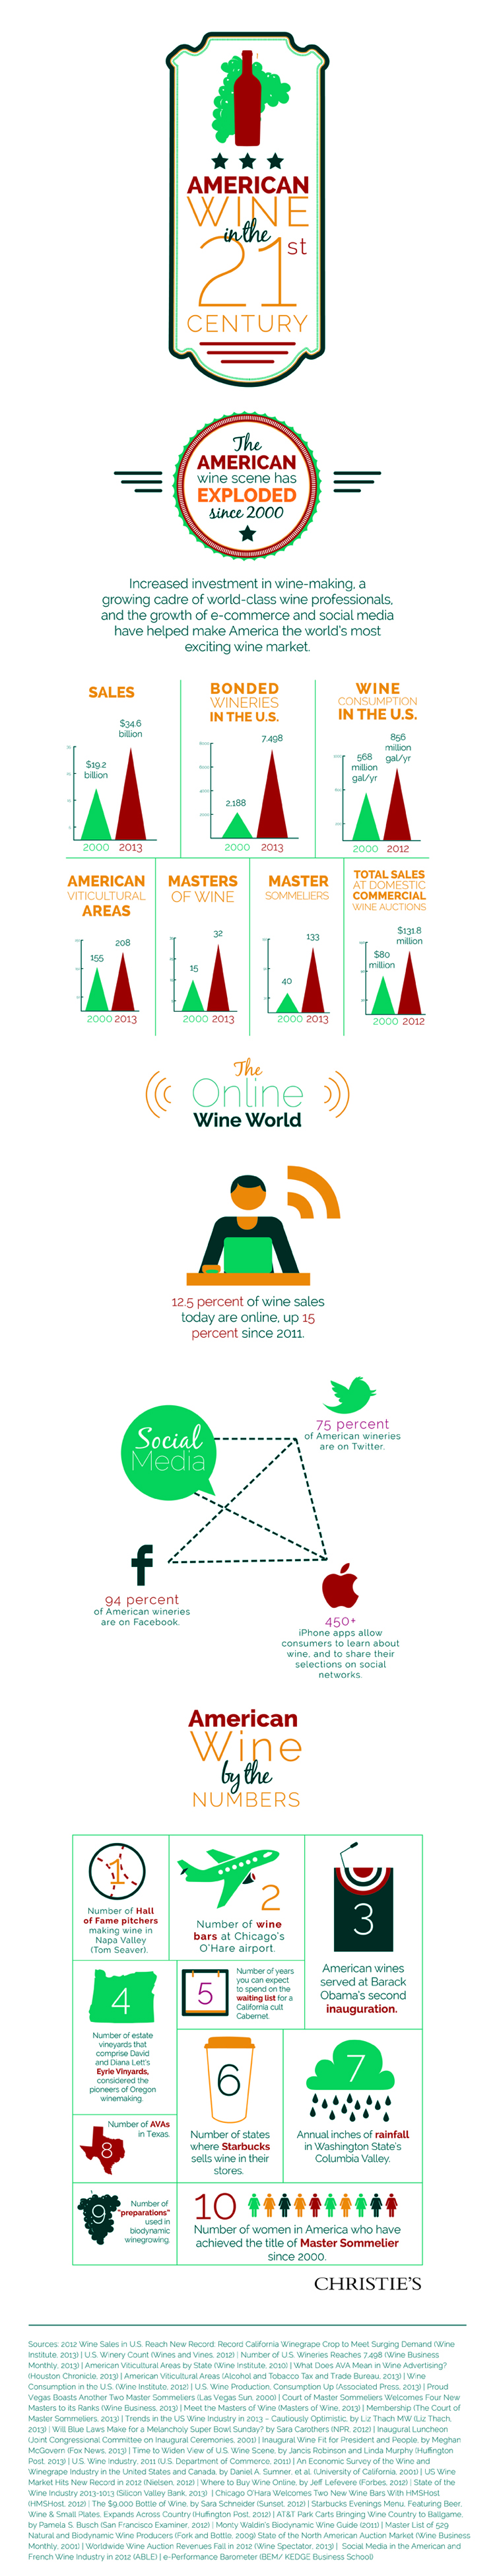 Wine Making Industry Trends